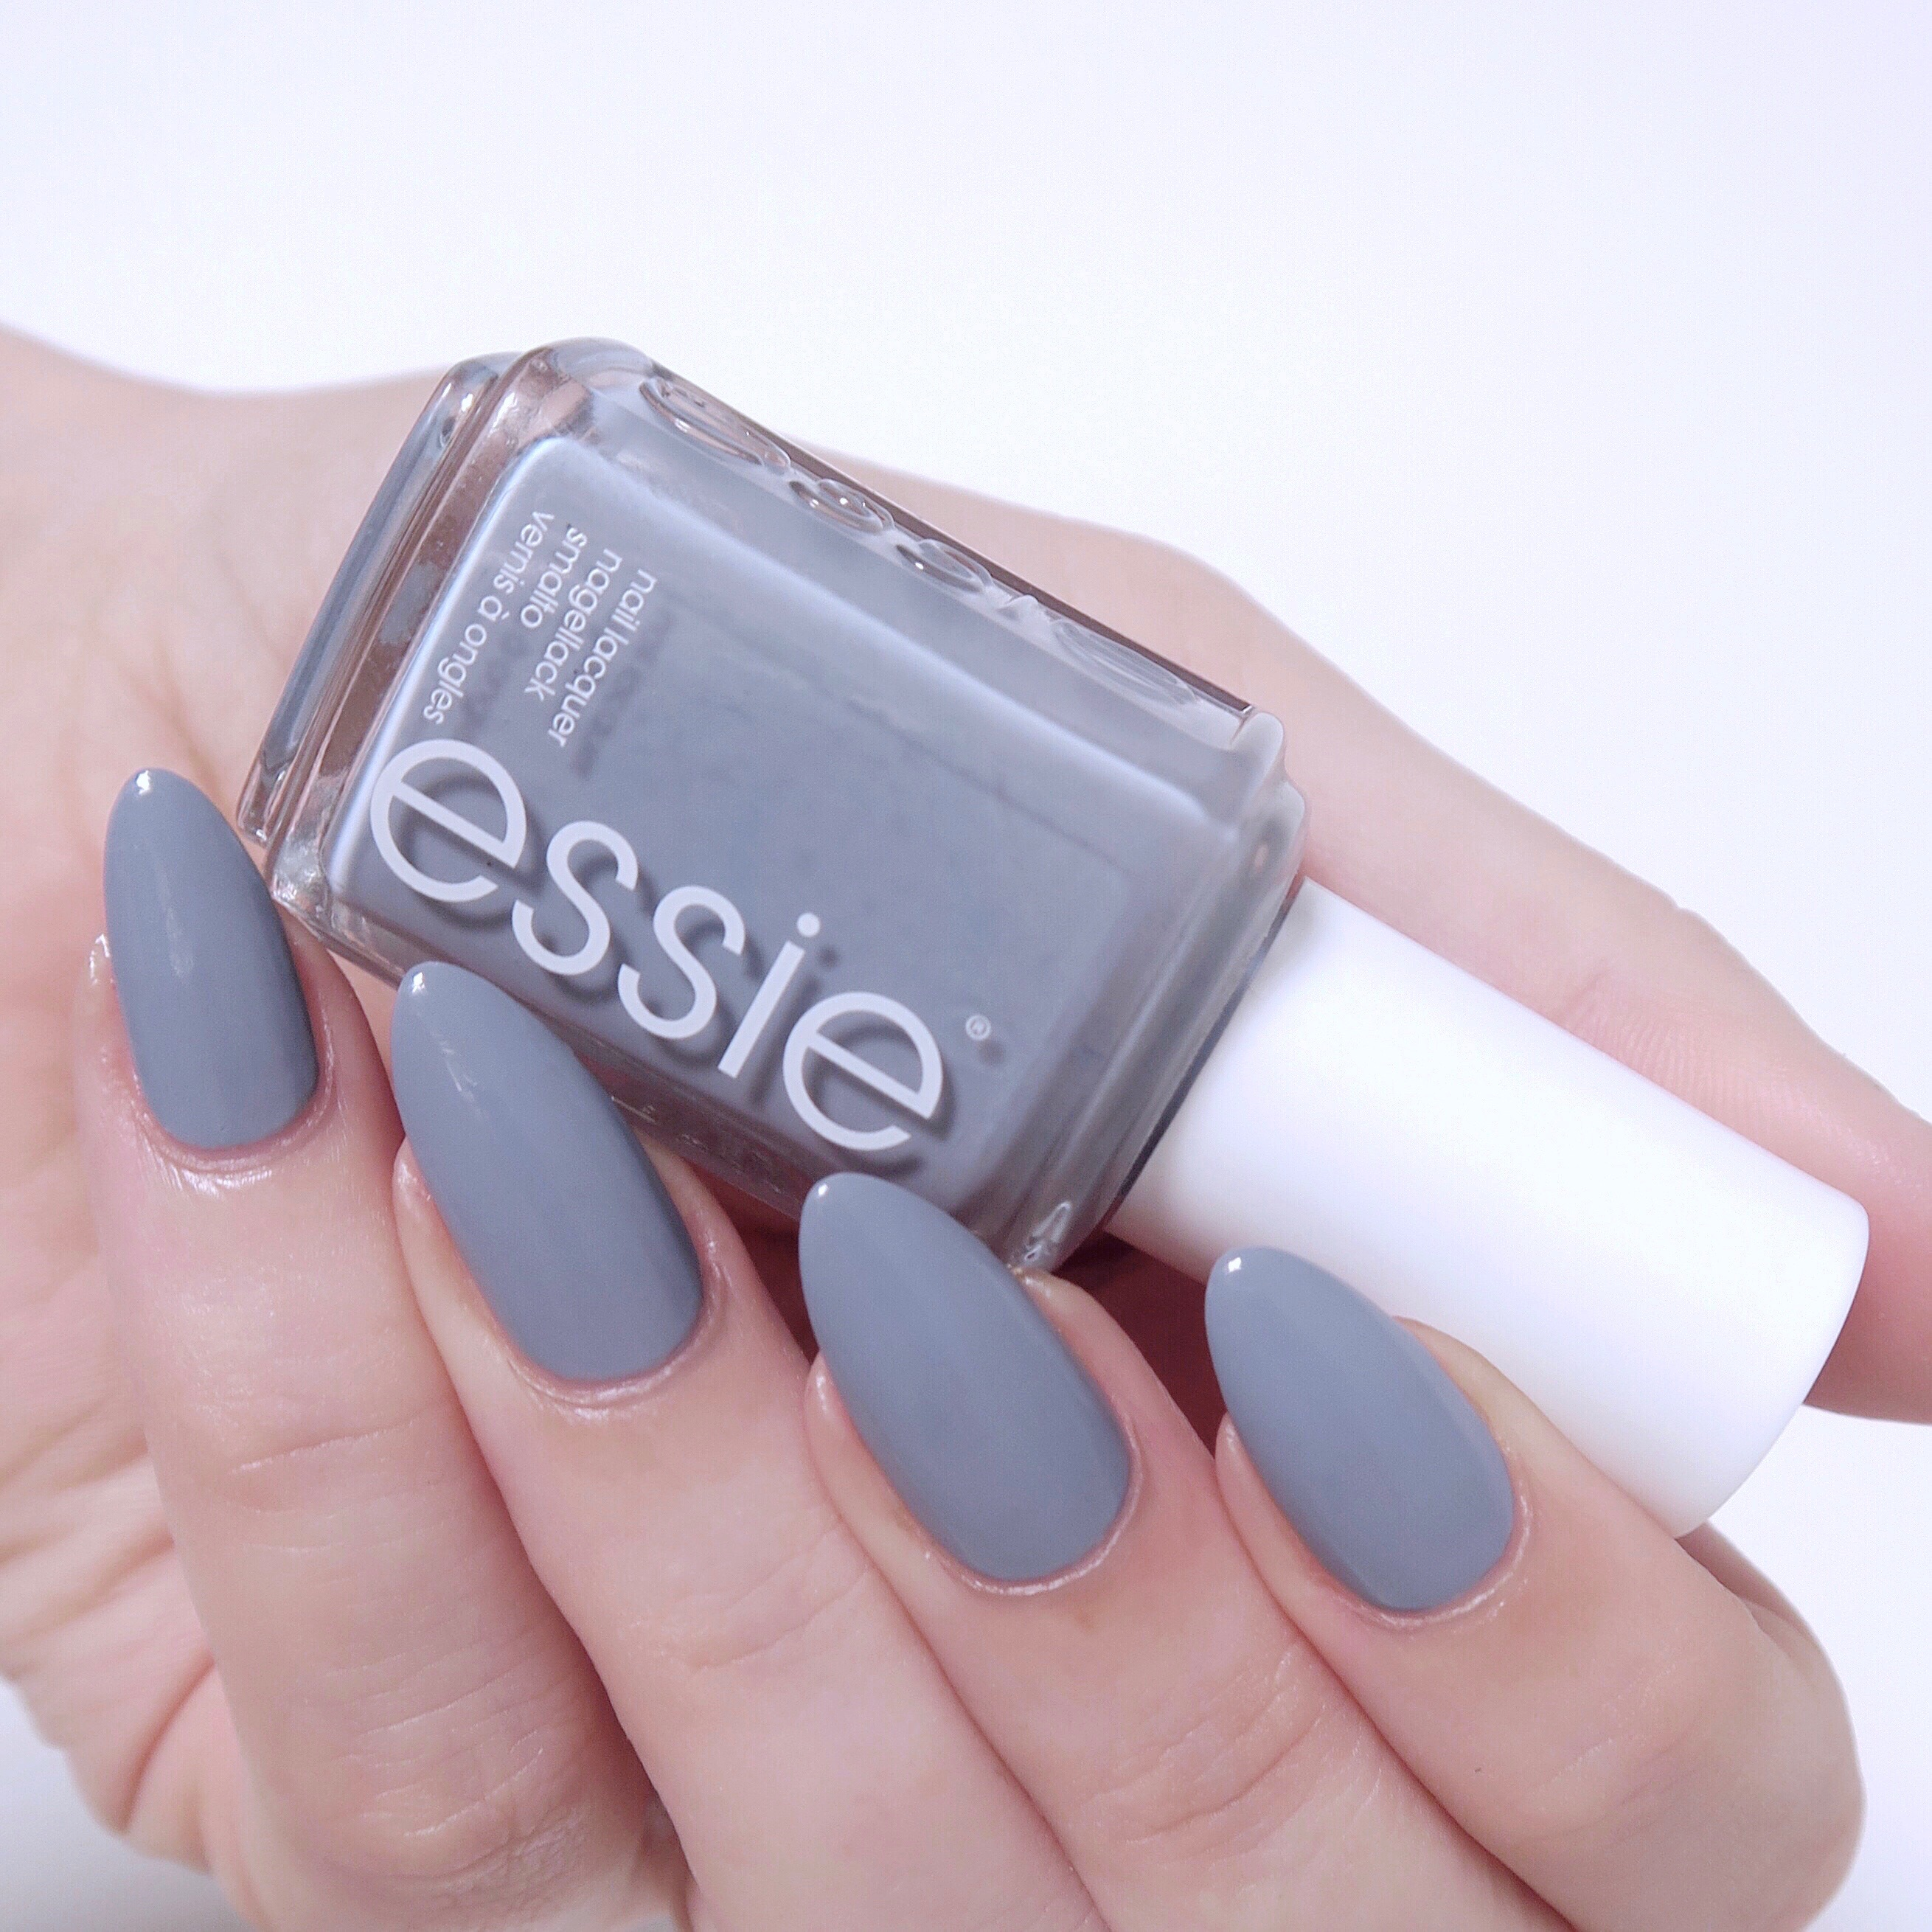 My favourite winter polishes - essie 'cocktail bling', a cult essie polish. It's the perfect blend of blue and grey. The dream cool-toned polish.